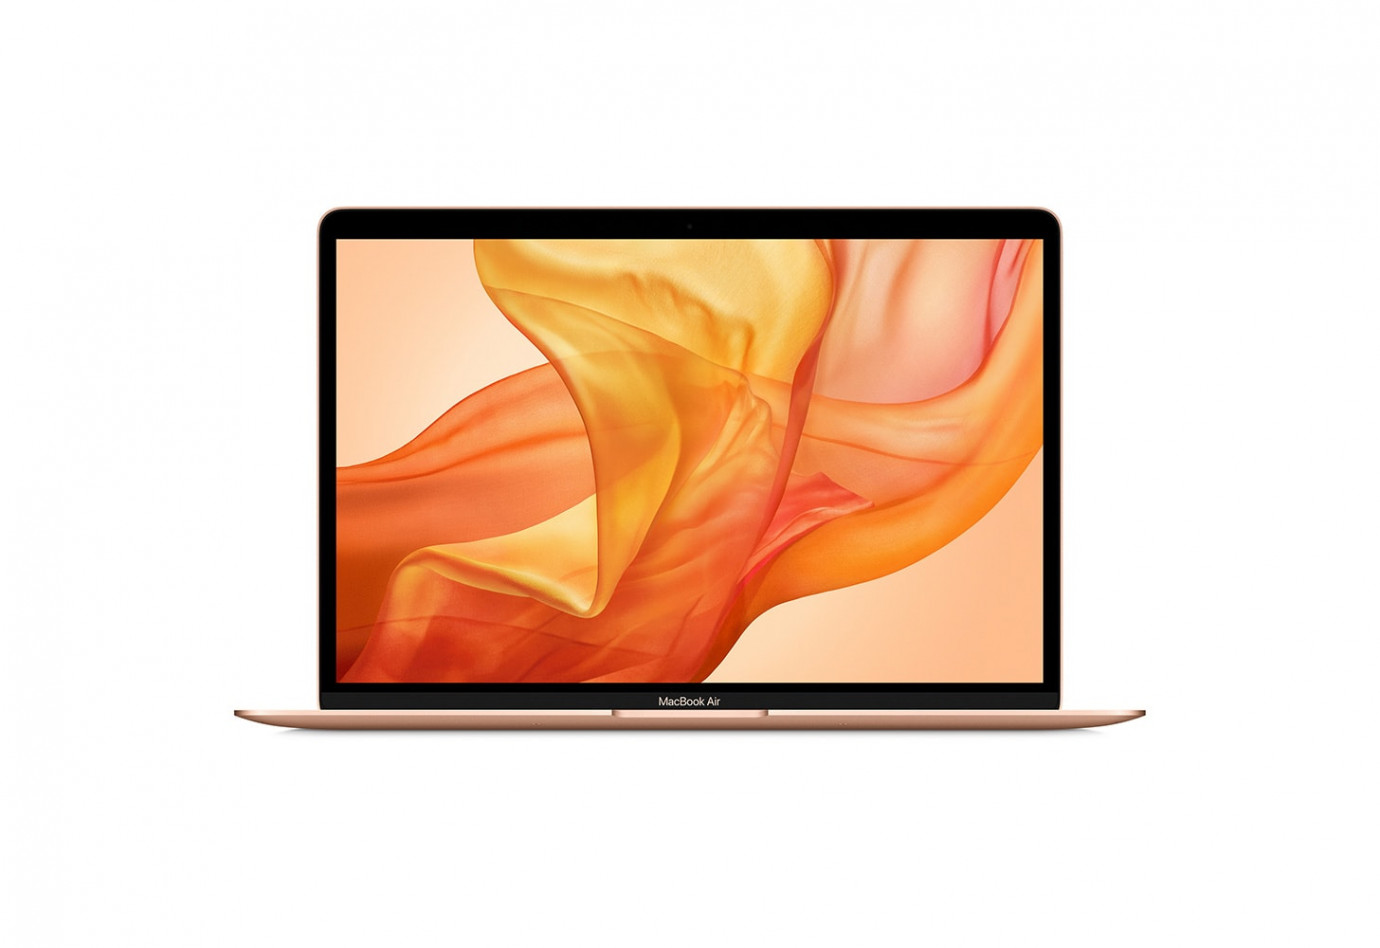 macbookair-gold-1.jpg